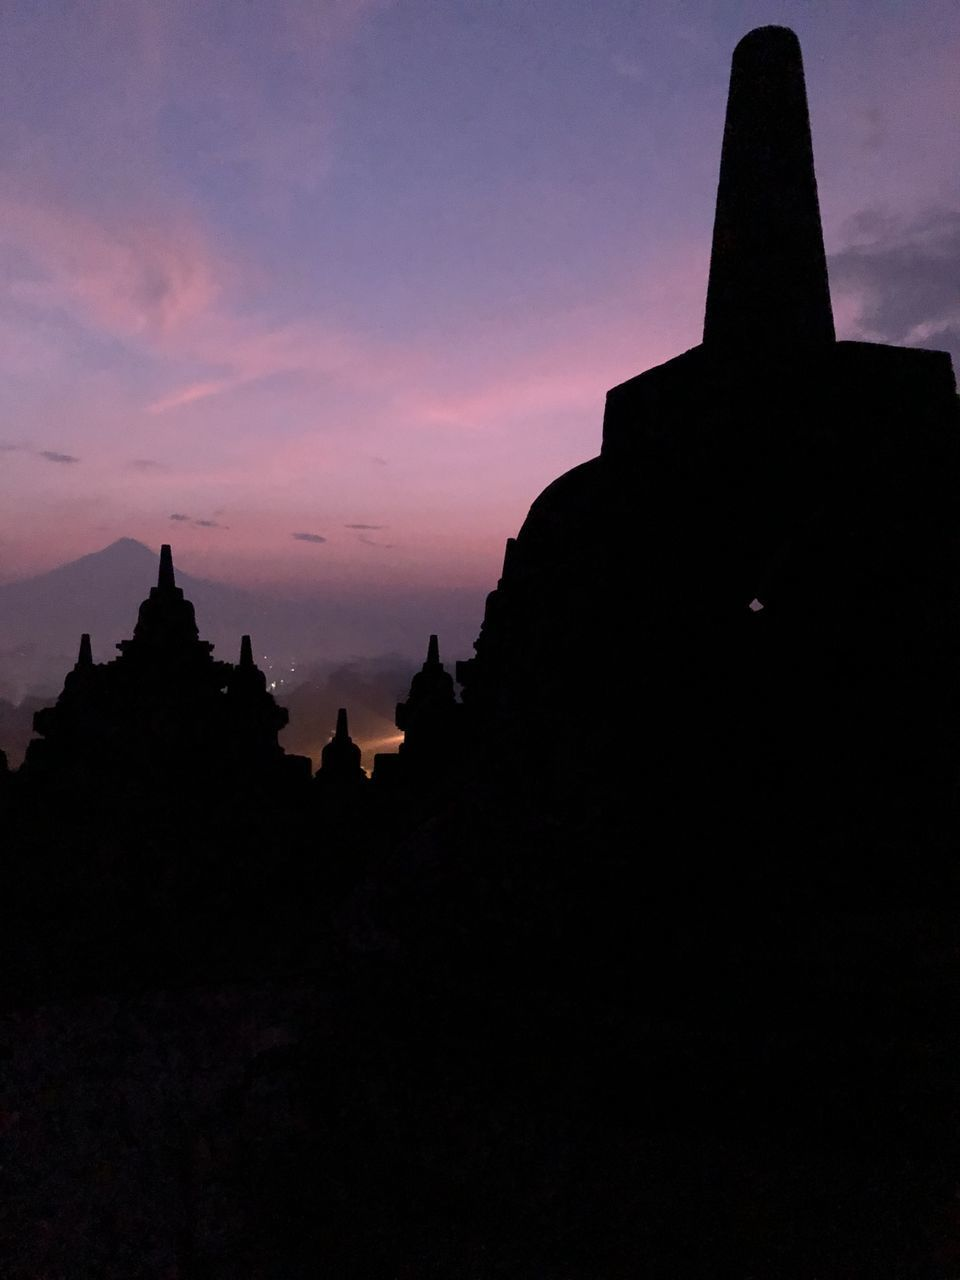 SILHOUETTE OF TEMPLE AGAINST SKY AT SUNSET